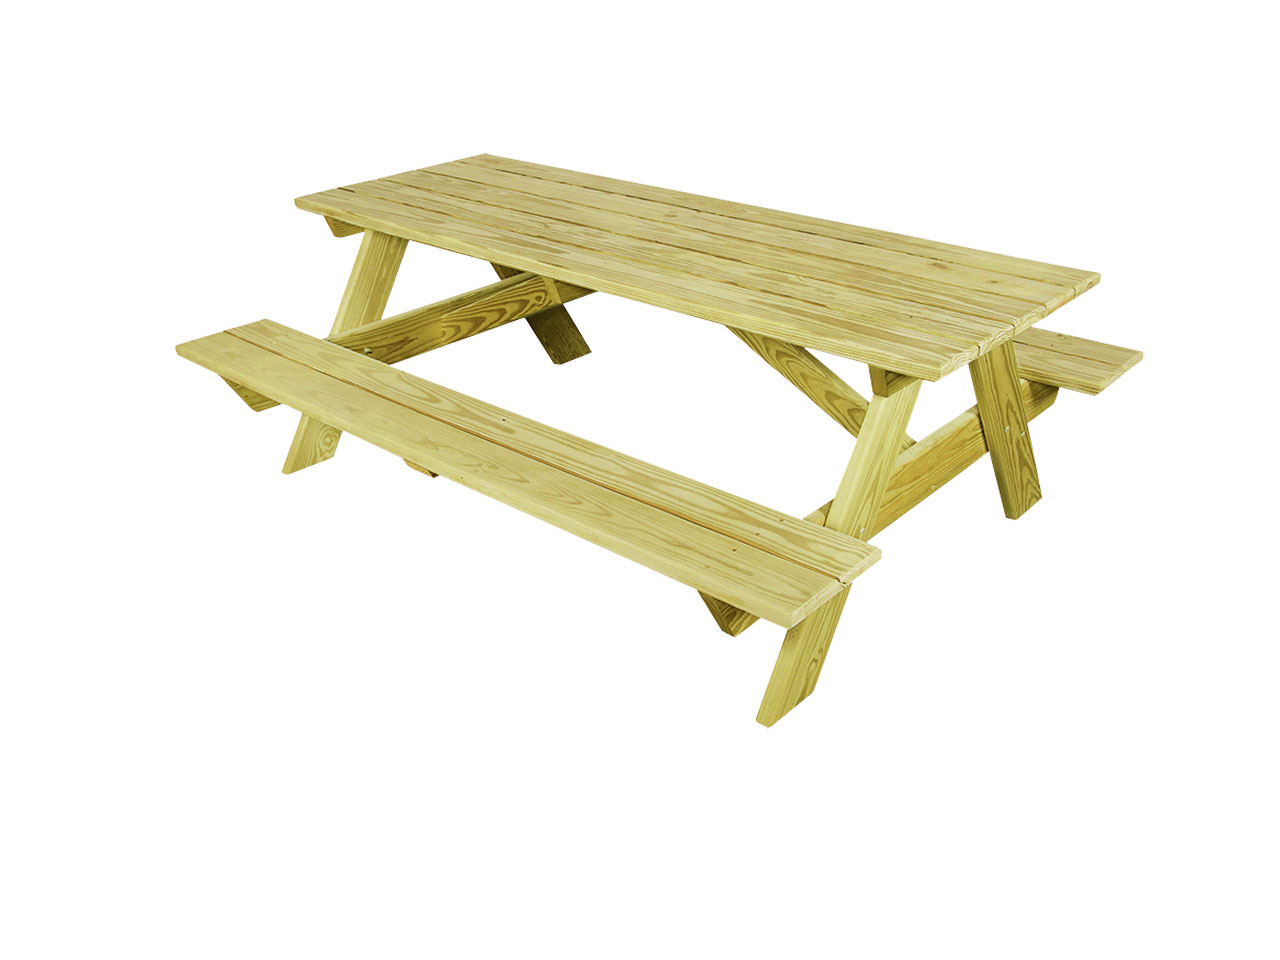 Outdoor furniture - wood picnic table with benches